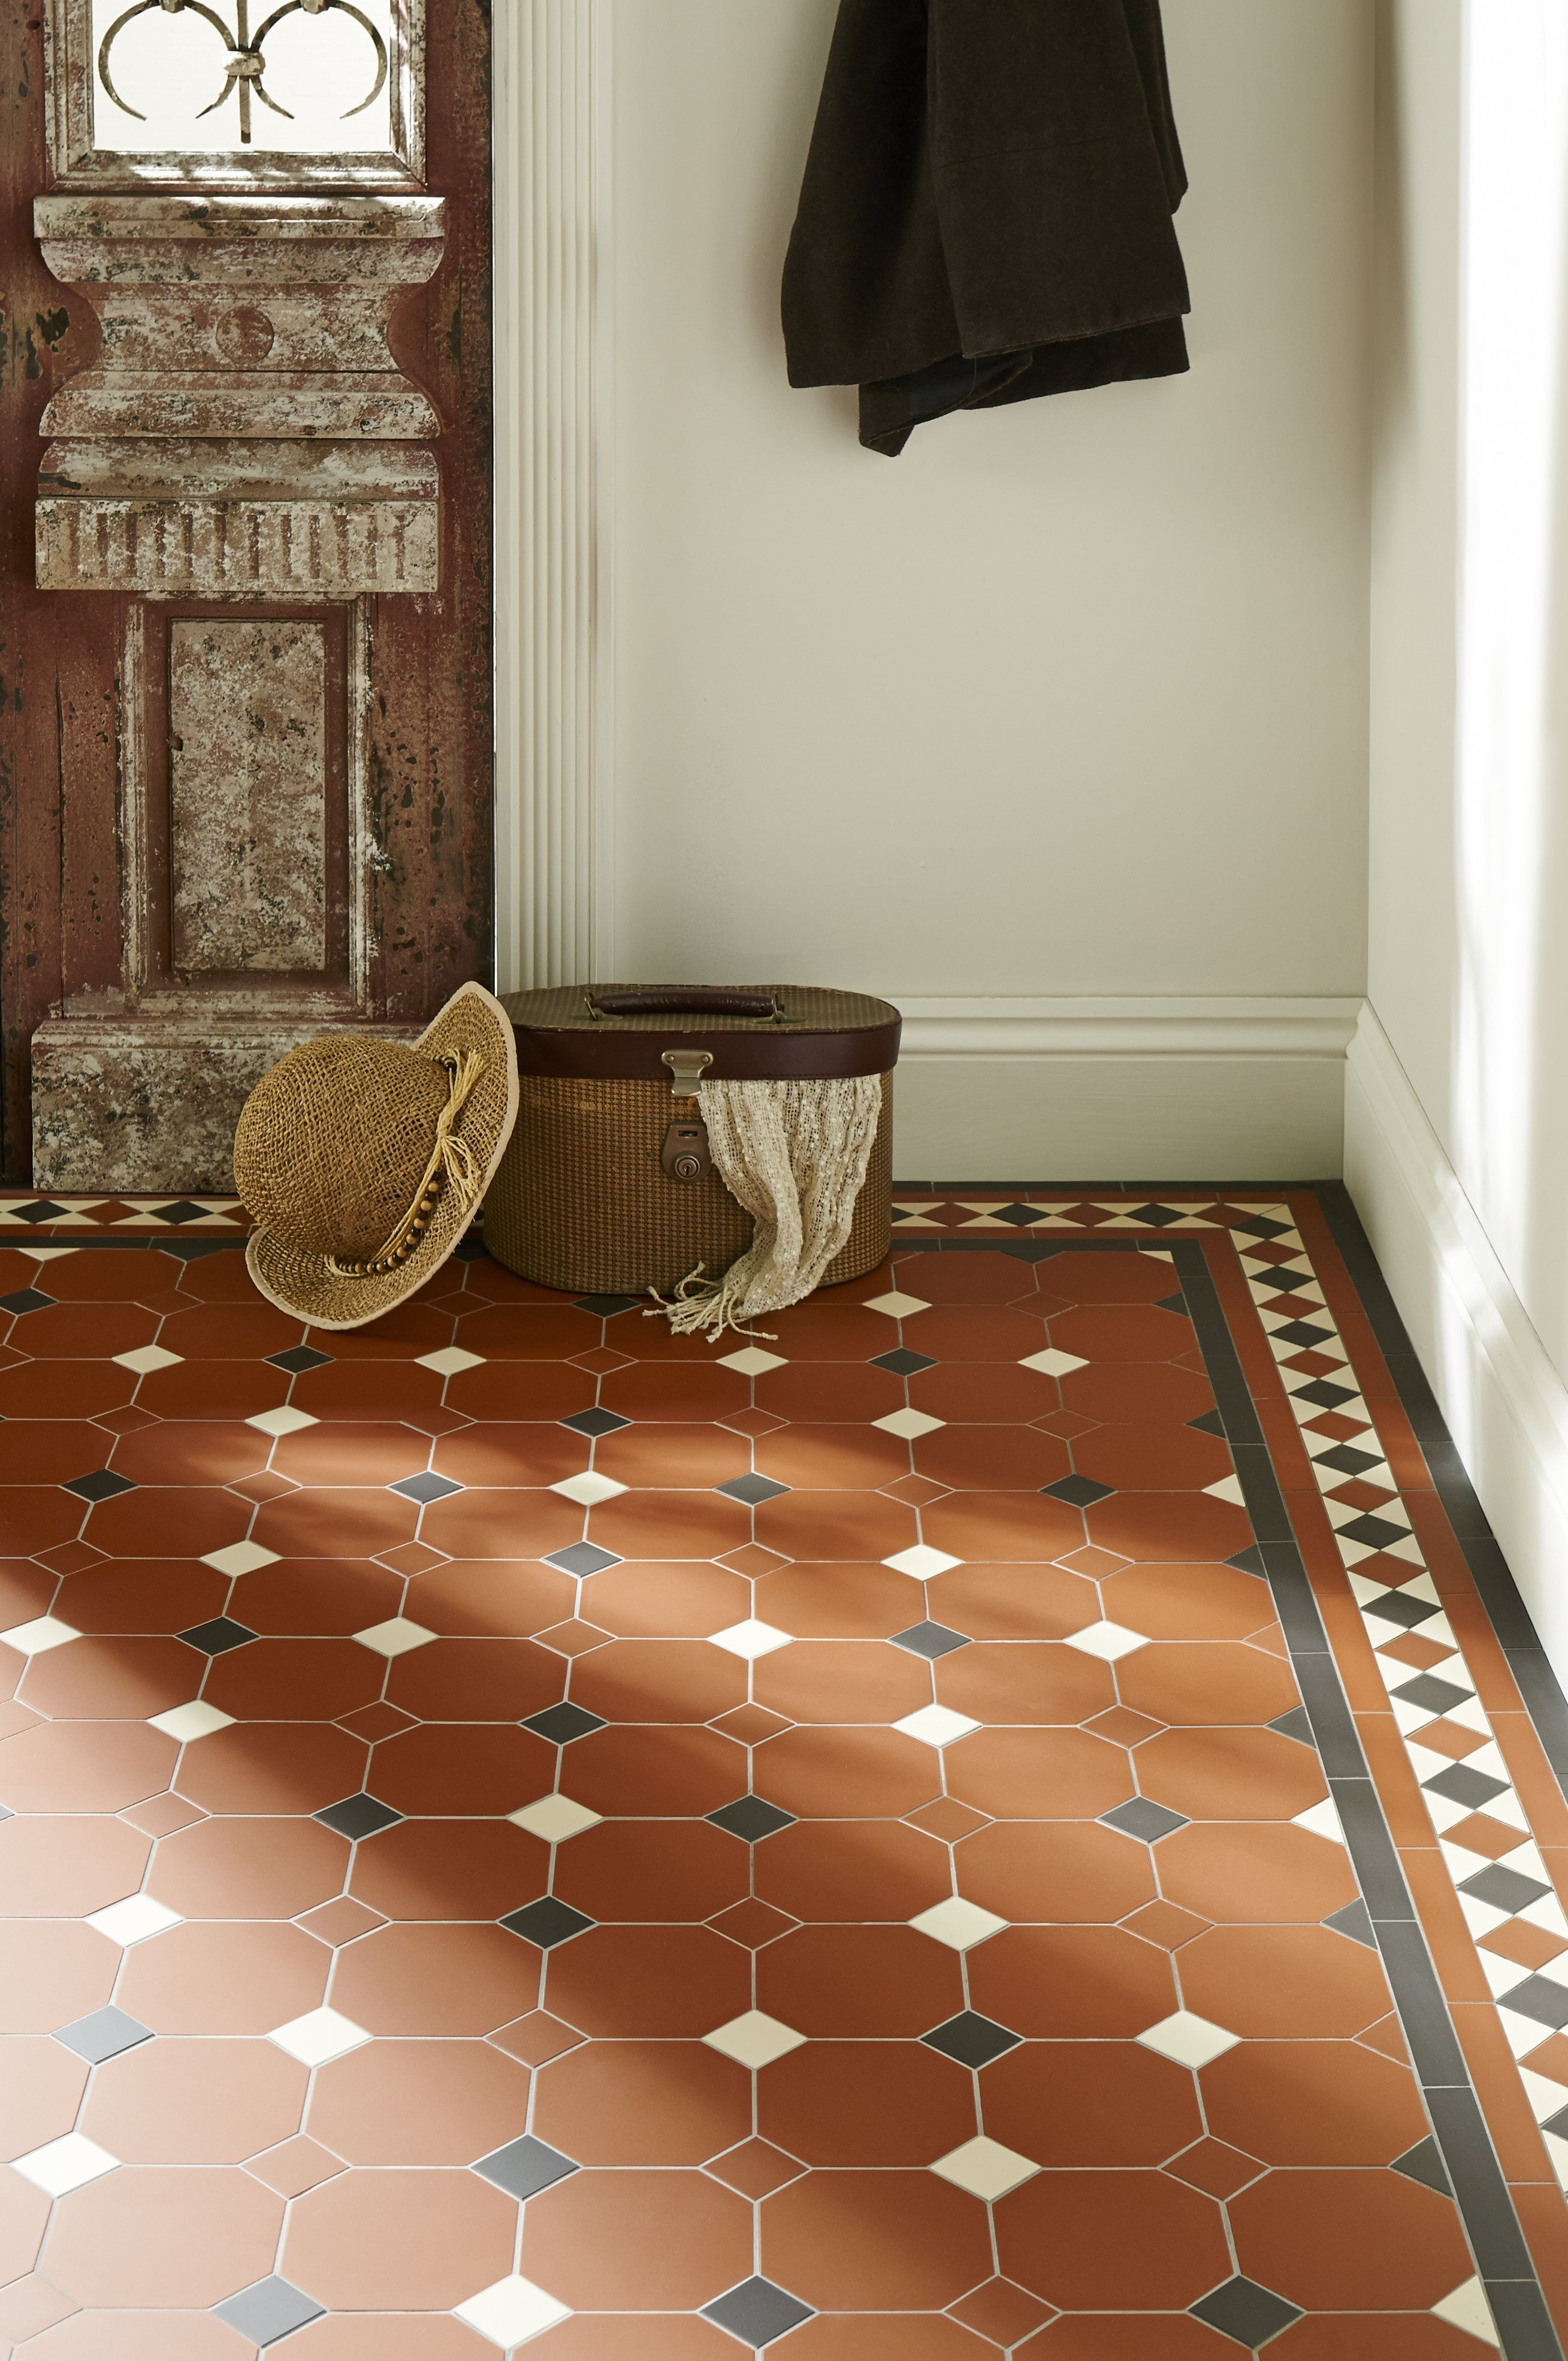 Harrogate Is Shown Here In A Warm Palette Adding Rustic Charm To This Hallway Pattern Will Make Statement Hallways Living Rooms Bathrooms